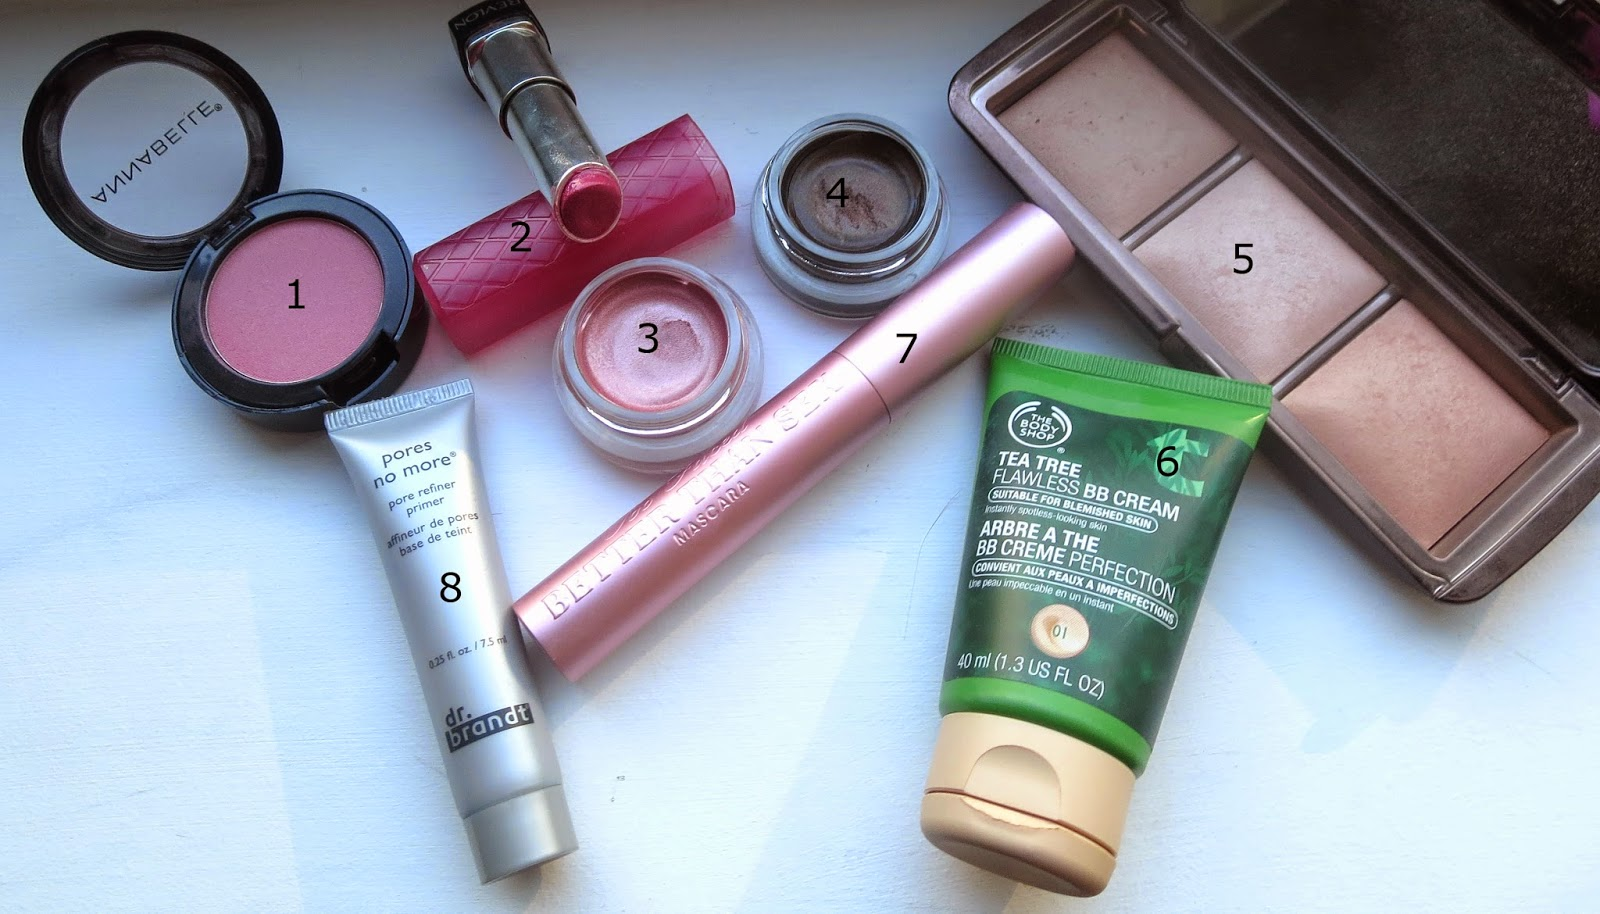 Blossom In Blush - Face of the night featured products